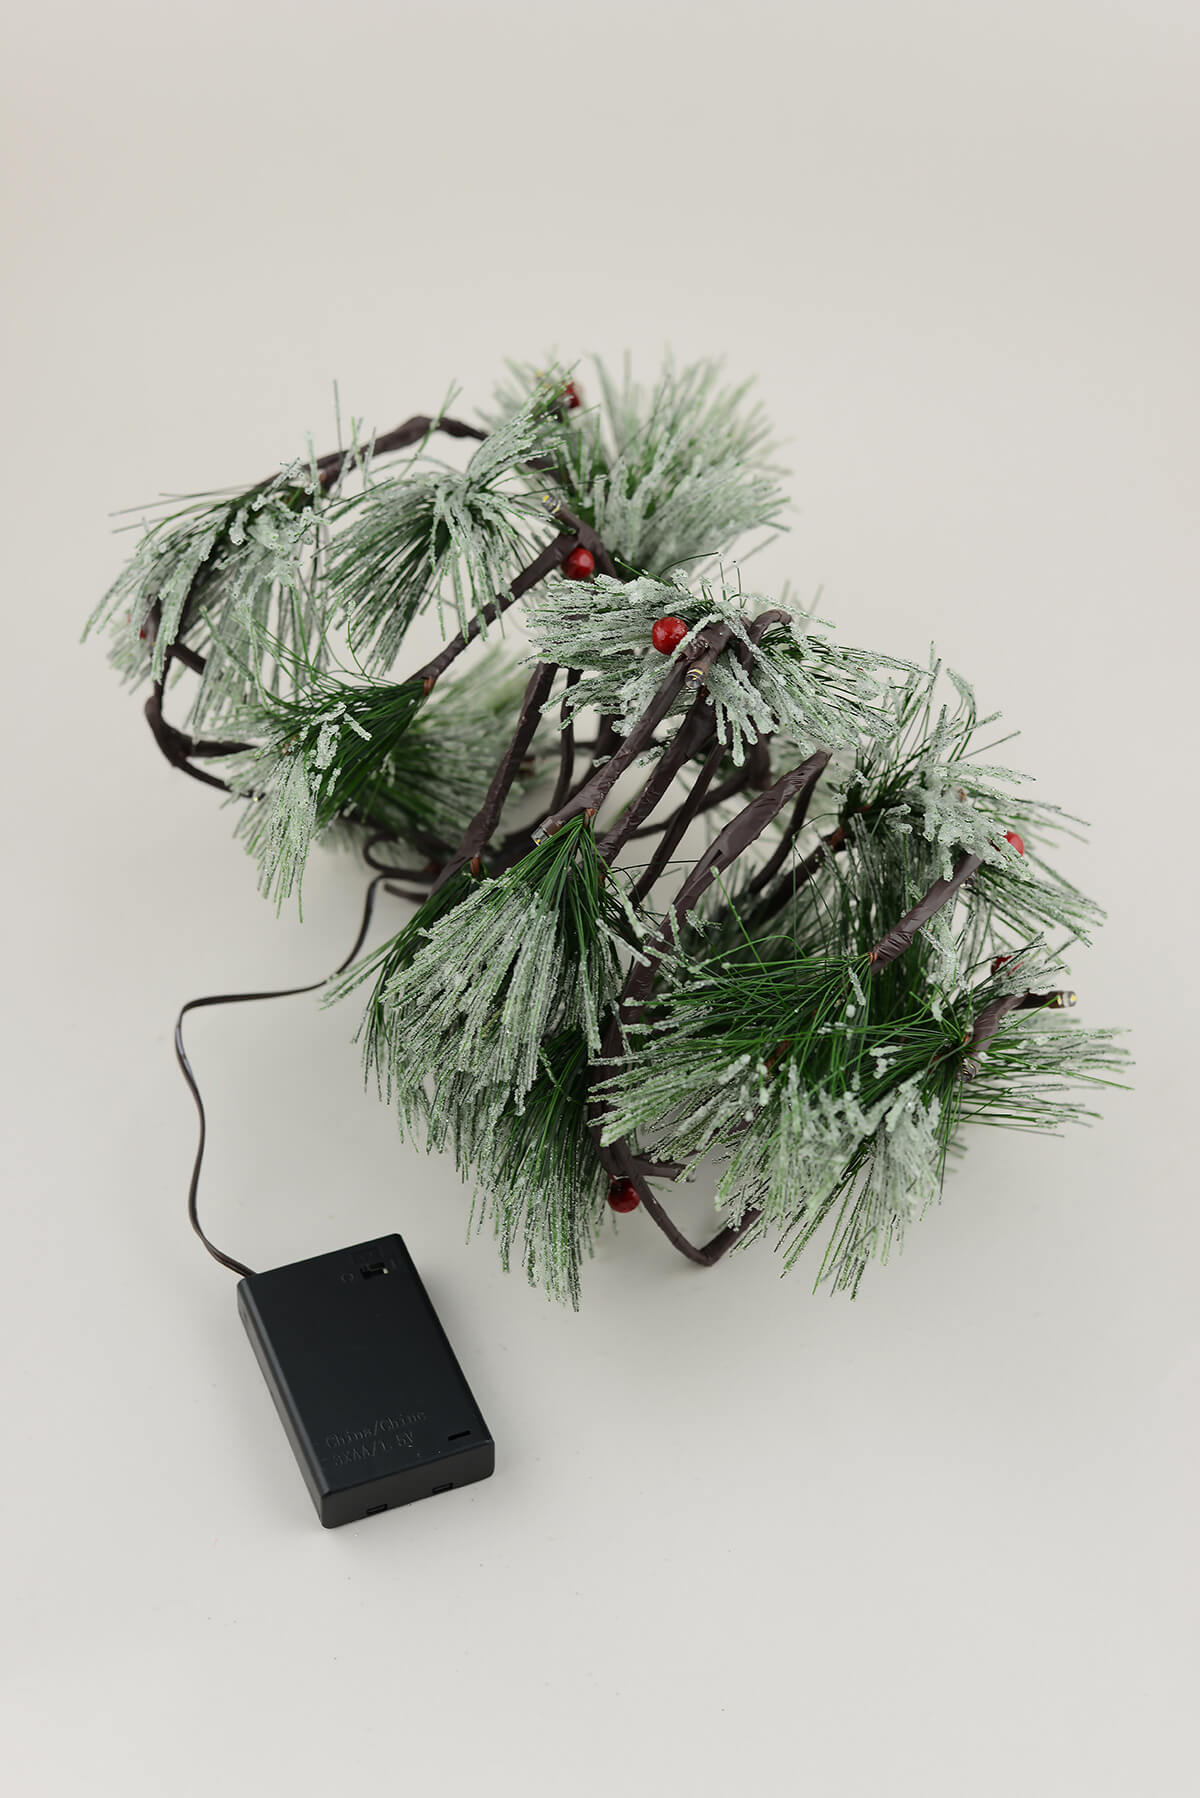 6FT PVC Pine Garland LED Frosted Battery Op Timer